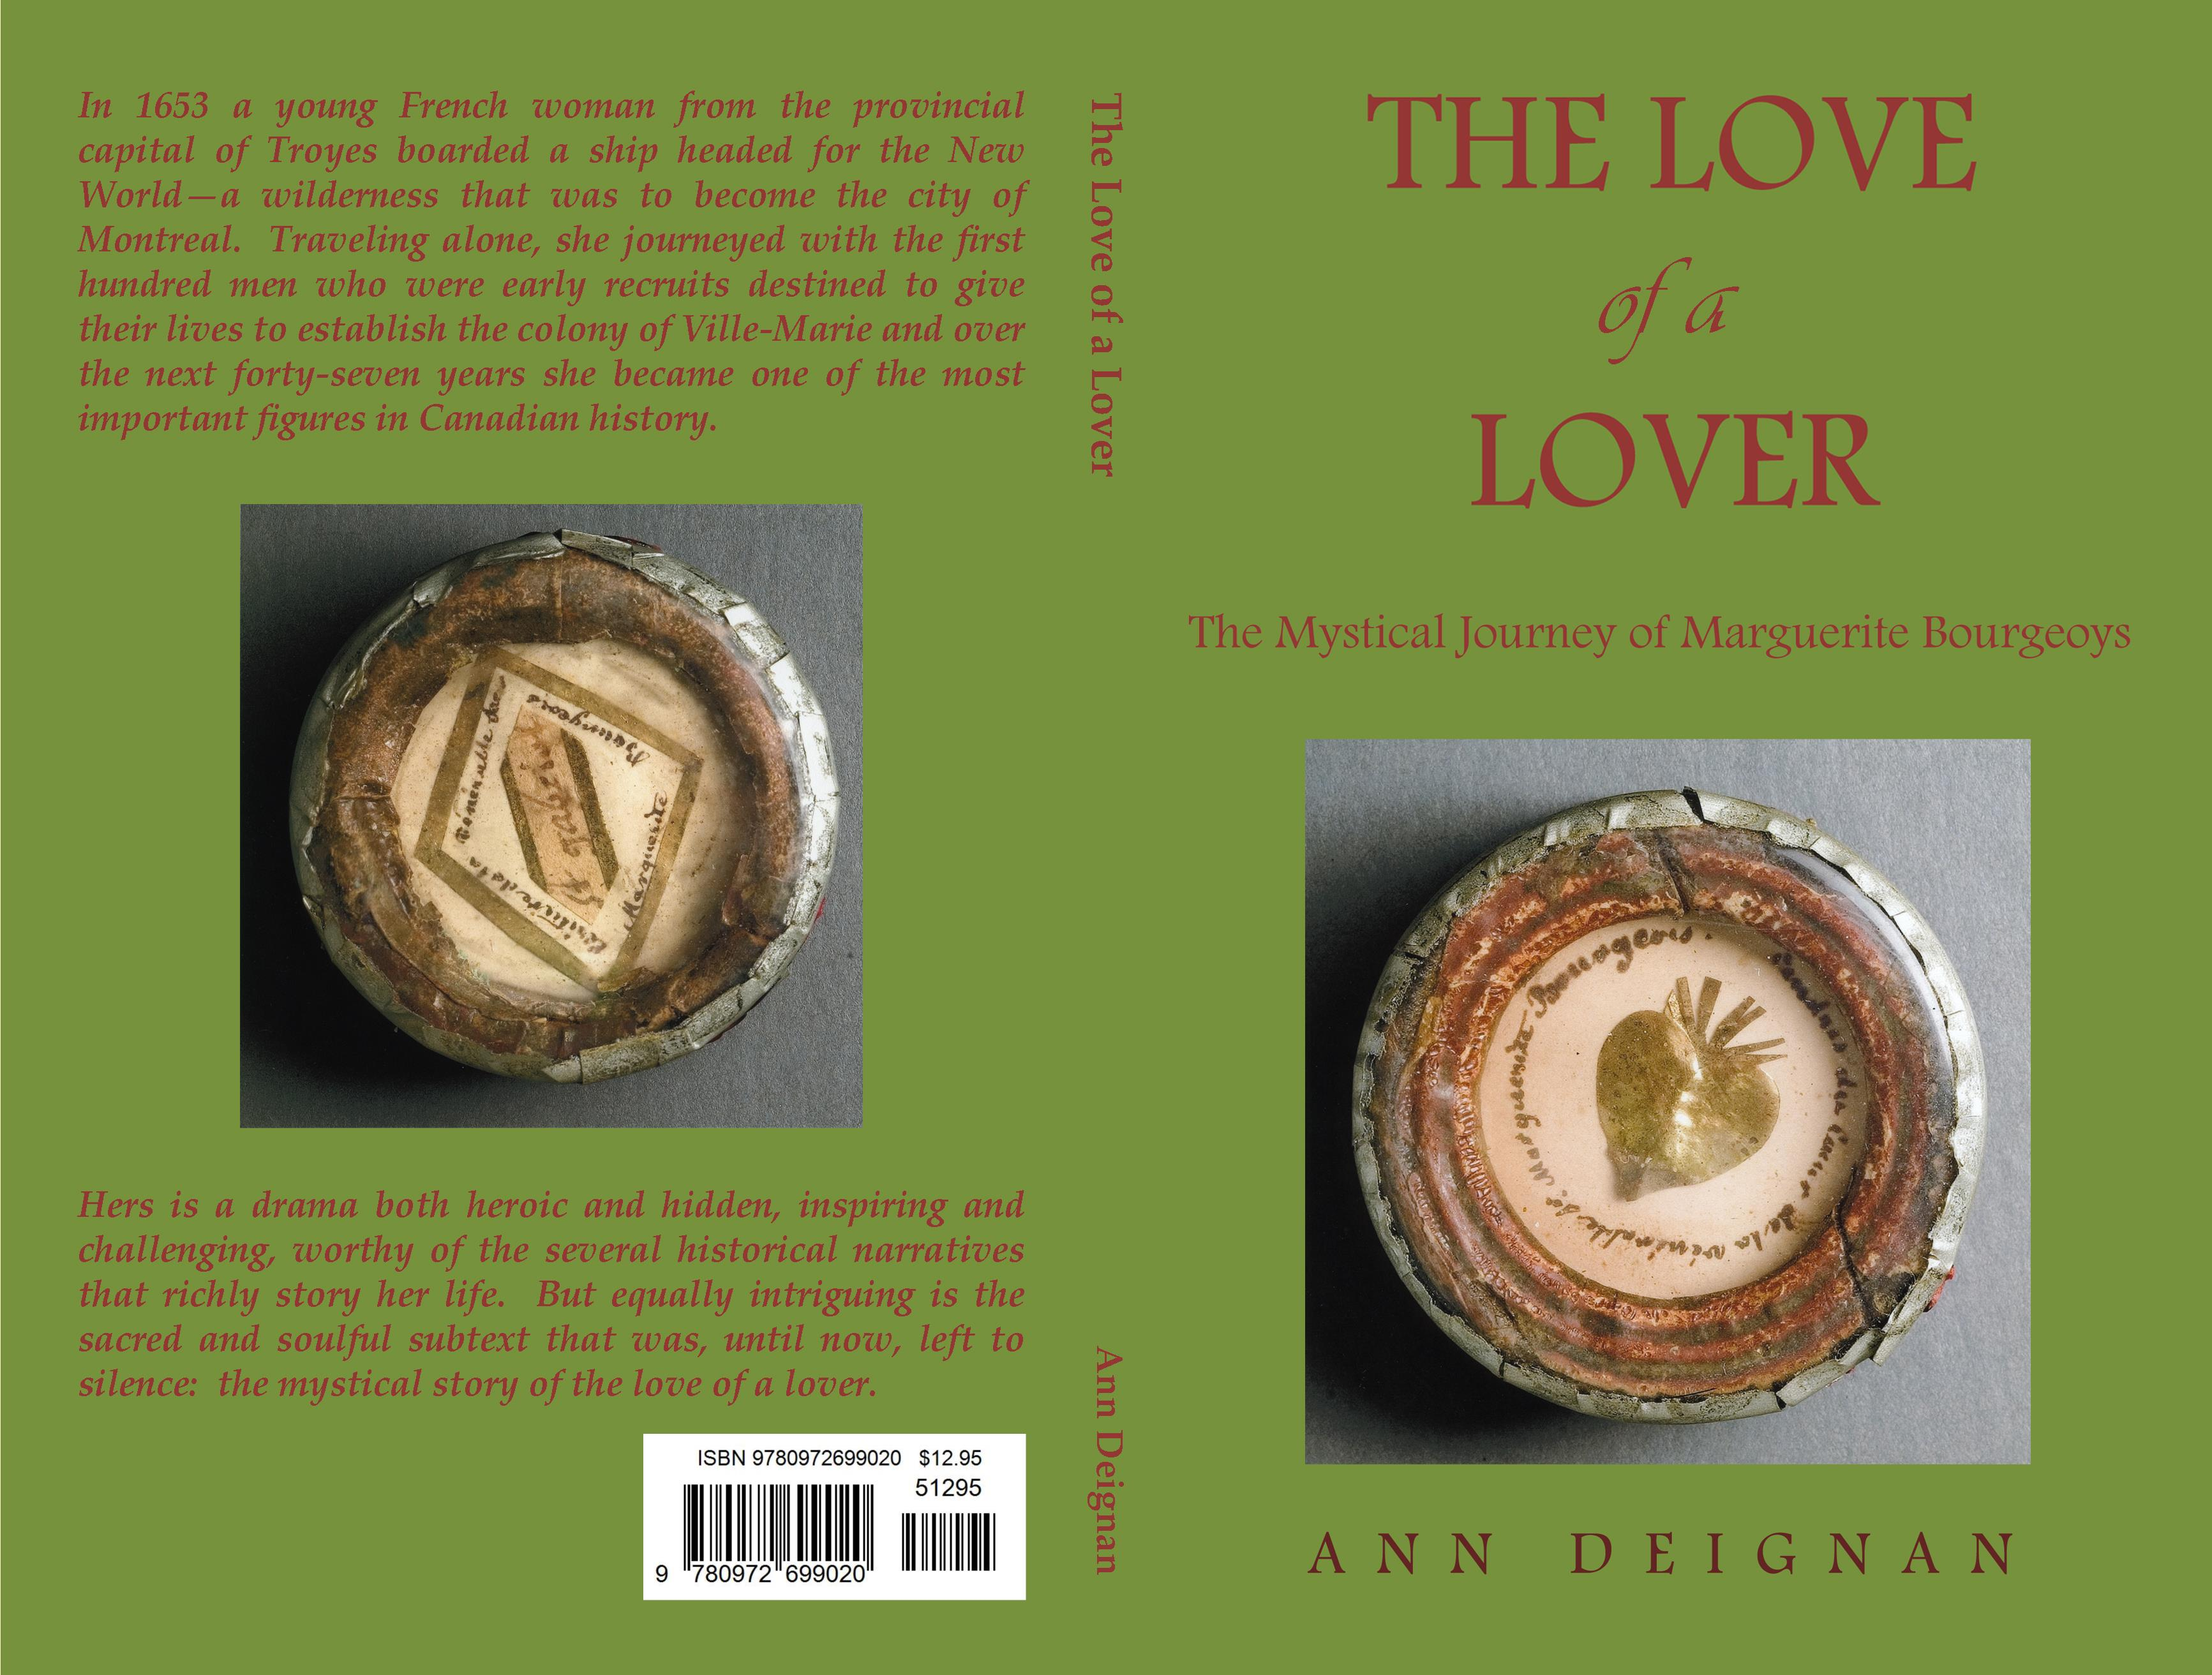 The Love of a Lover cover image